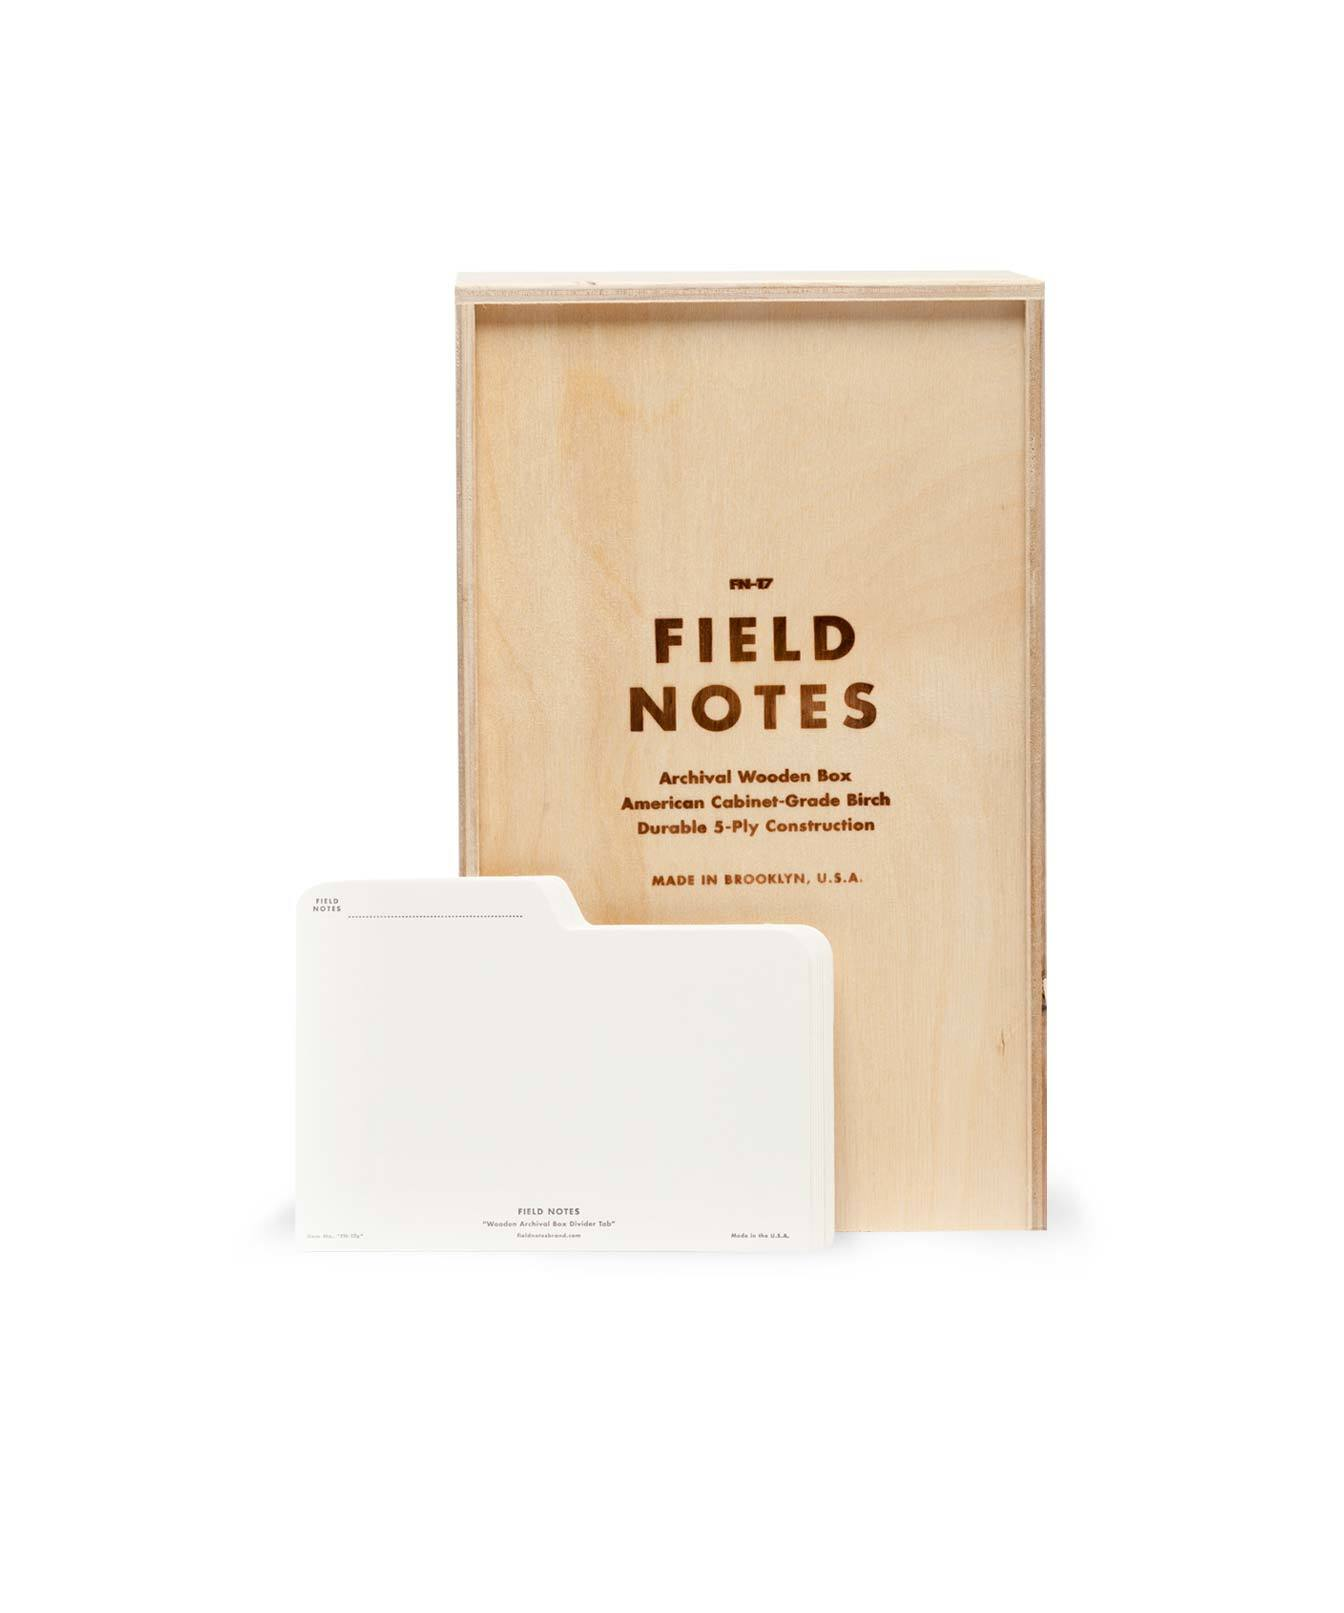 Field Notes Archival Box, Archivbox aus hellem Holz, Registerreiter,